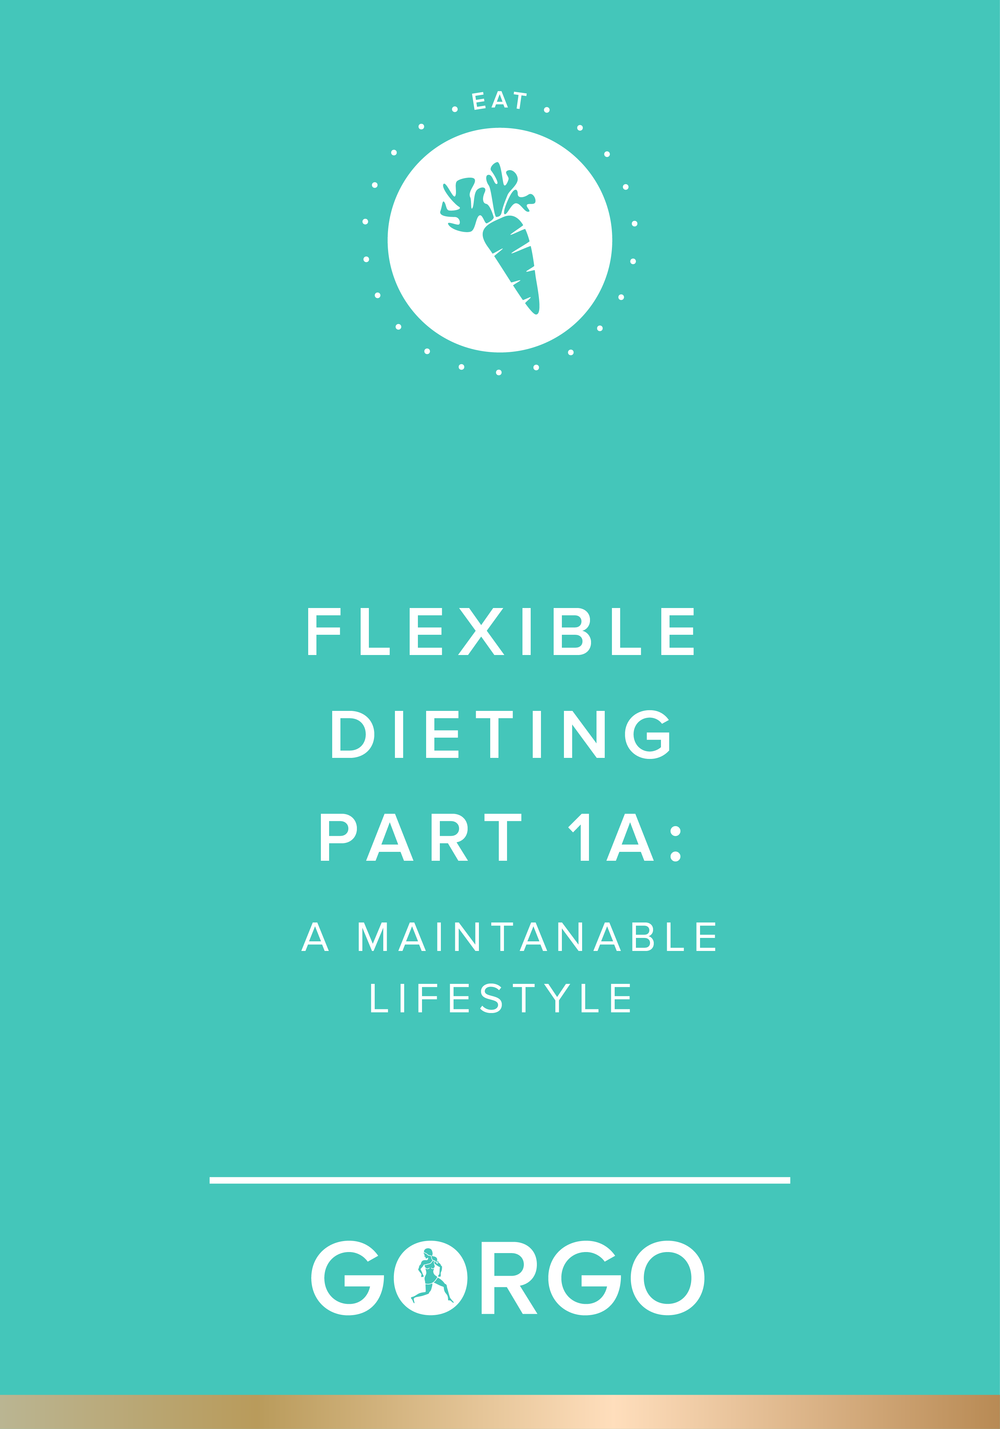 Flexible Dieting Part 1A: A Maintainable Lifestyle